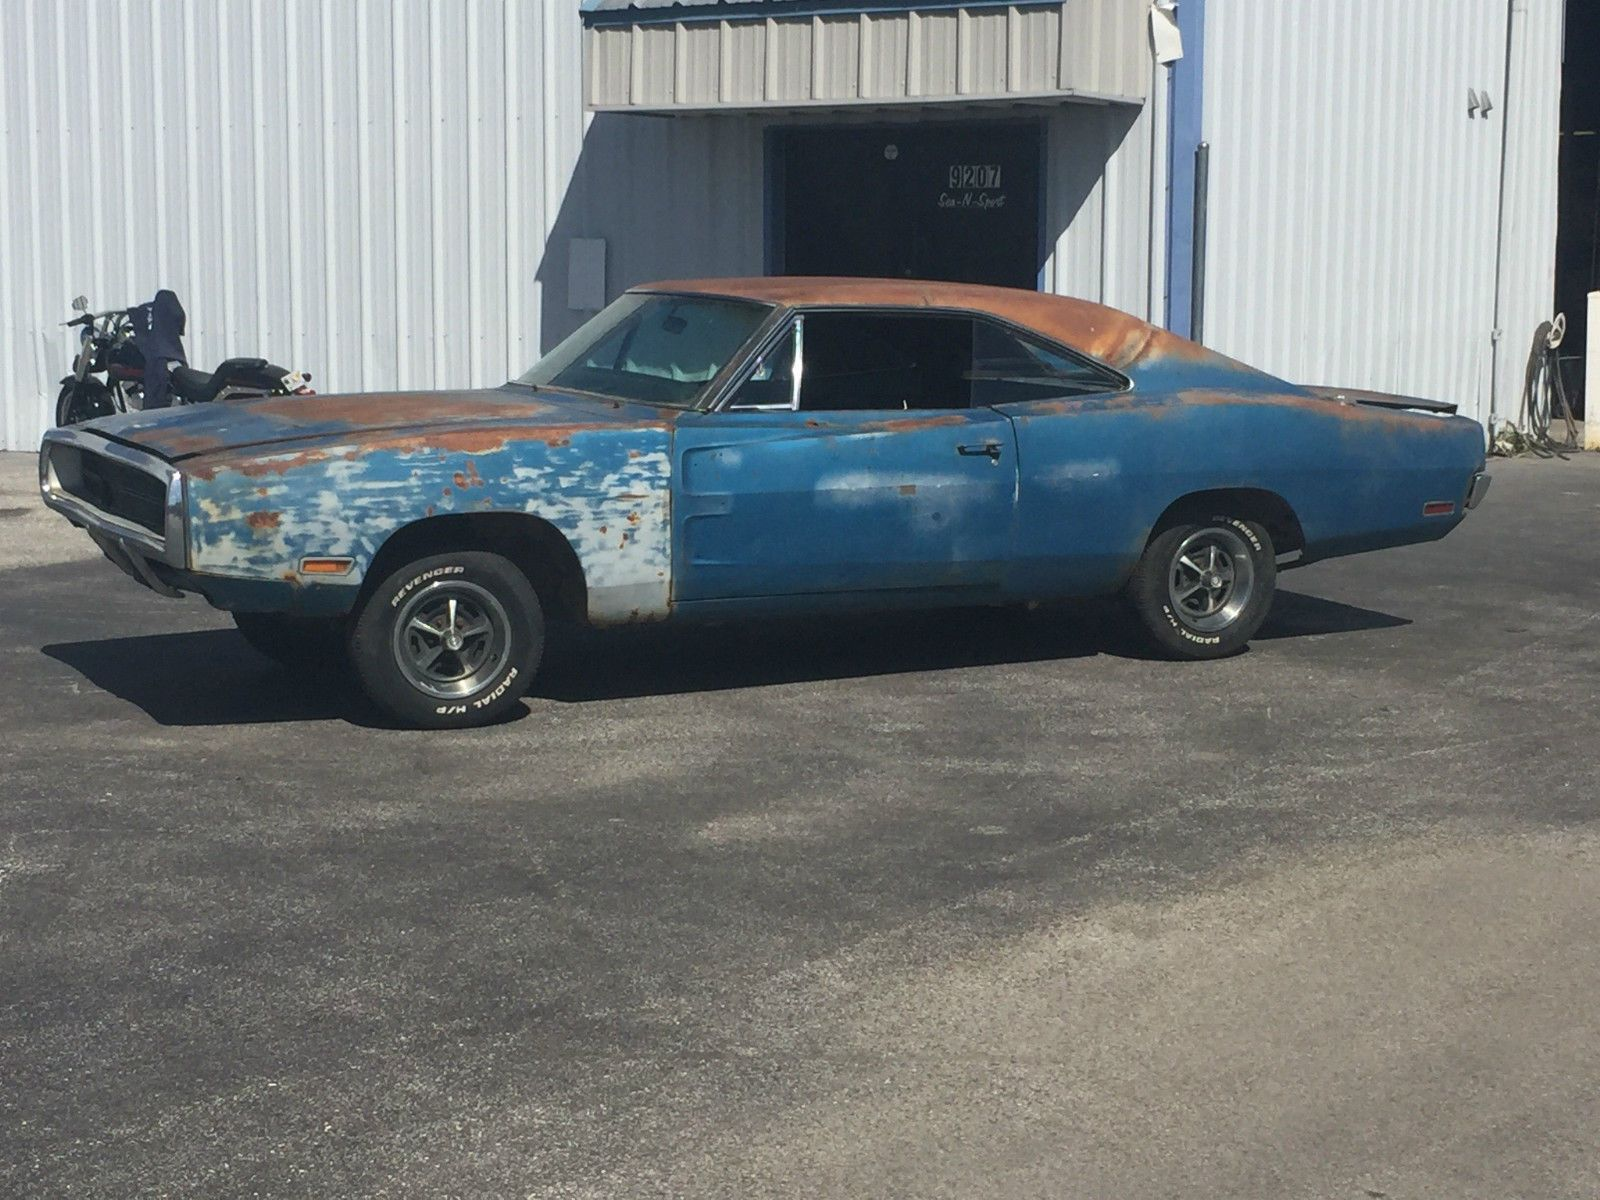 1970 dodge charger rt project car overall solid car project cars for sale pinterest dodge. Black Bedroom Furniture Sets. Home Design Ideas